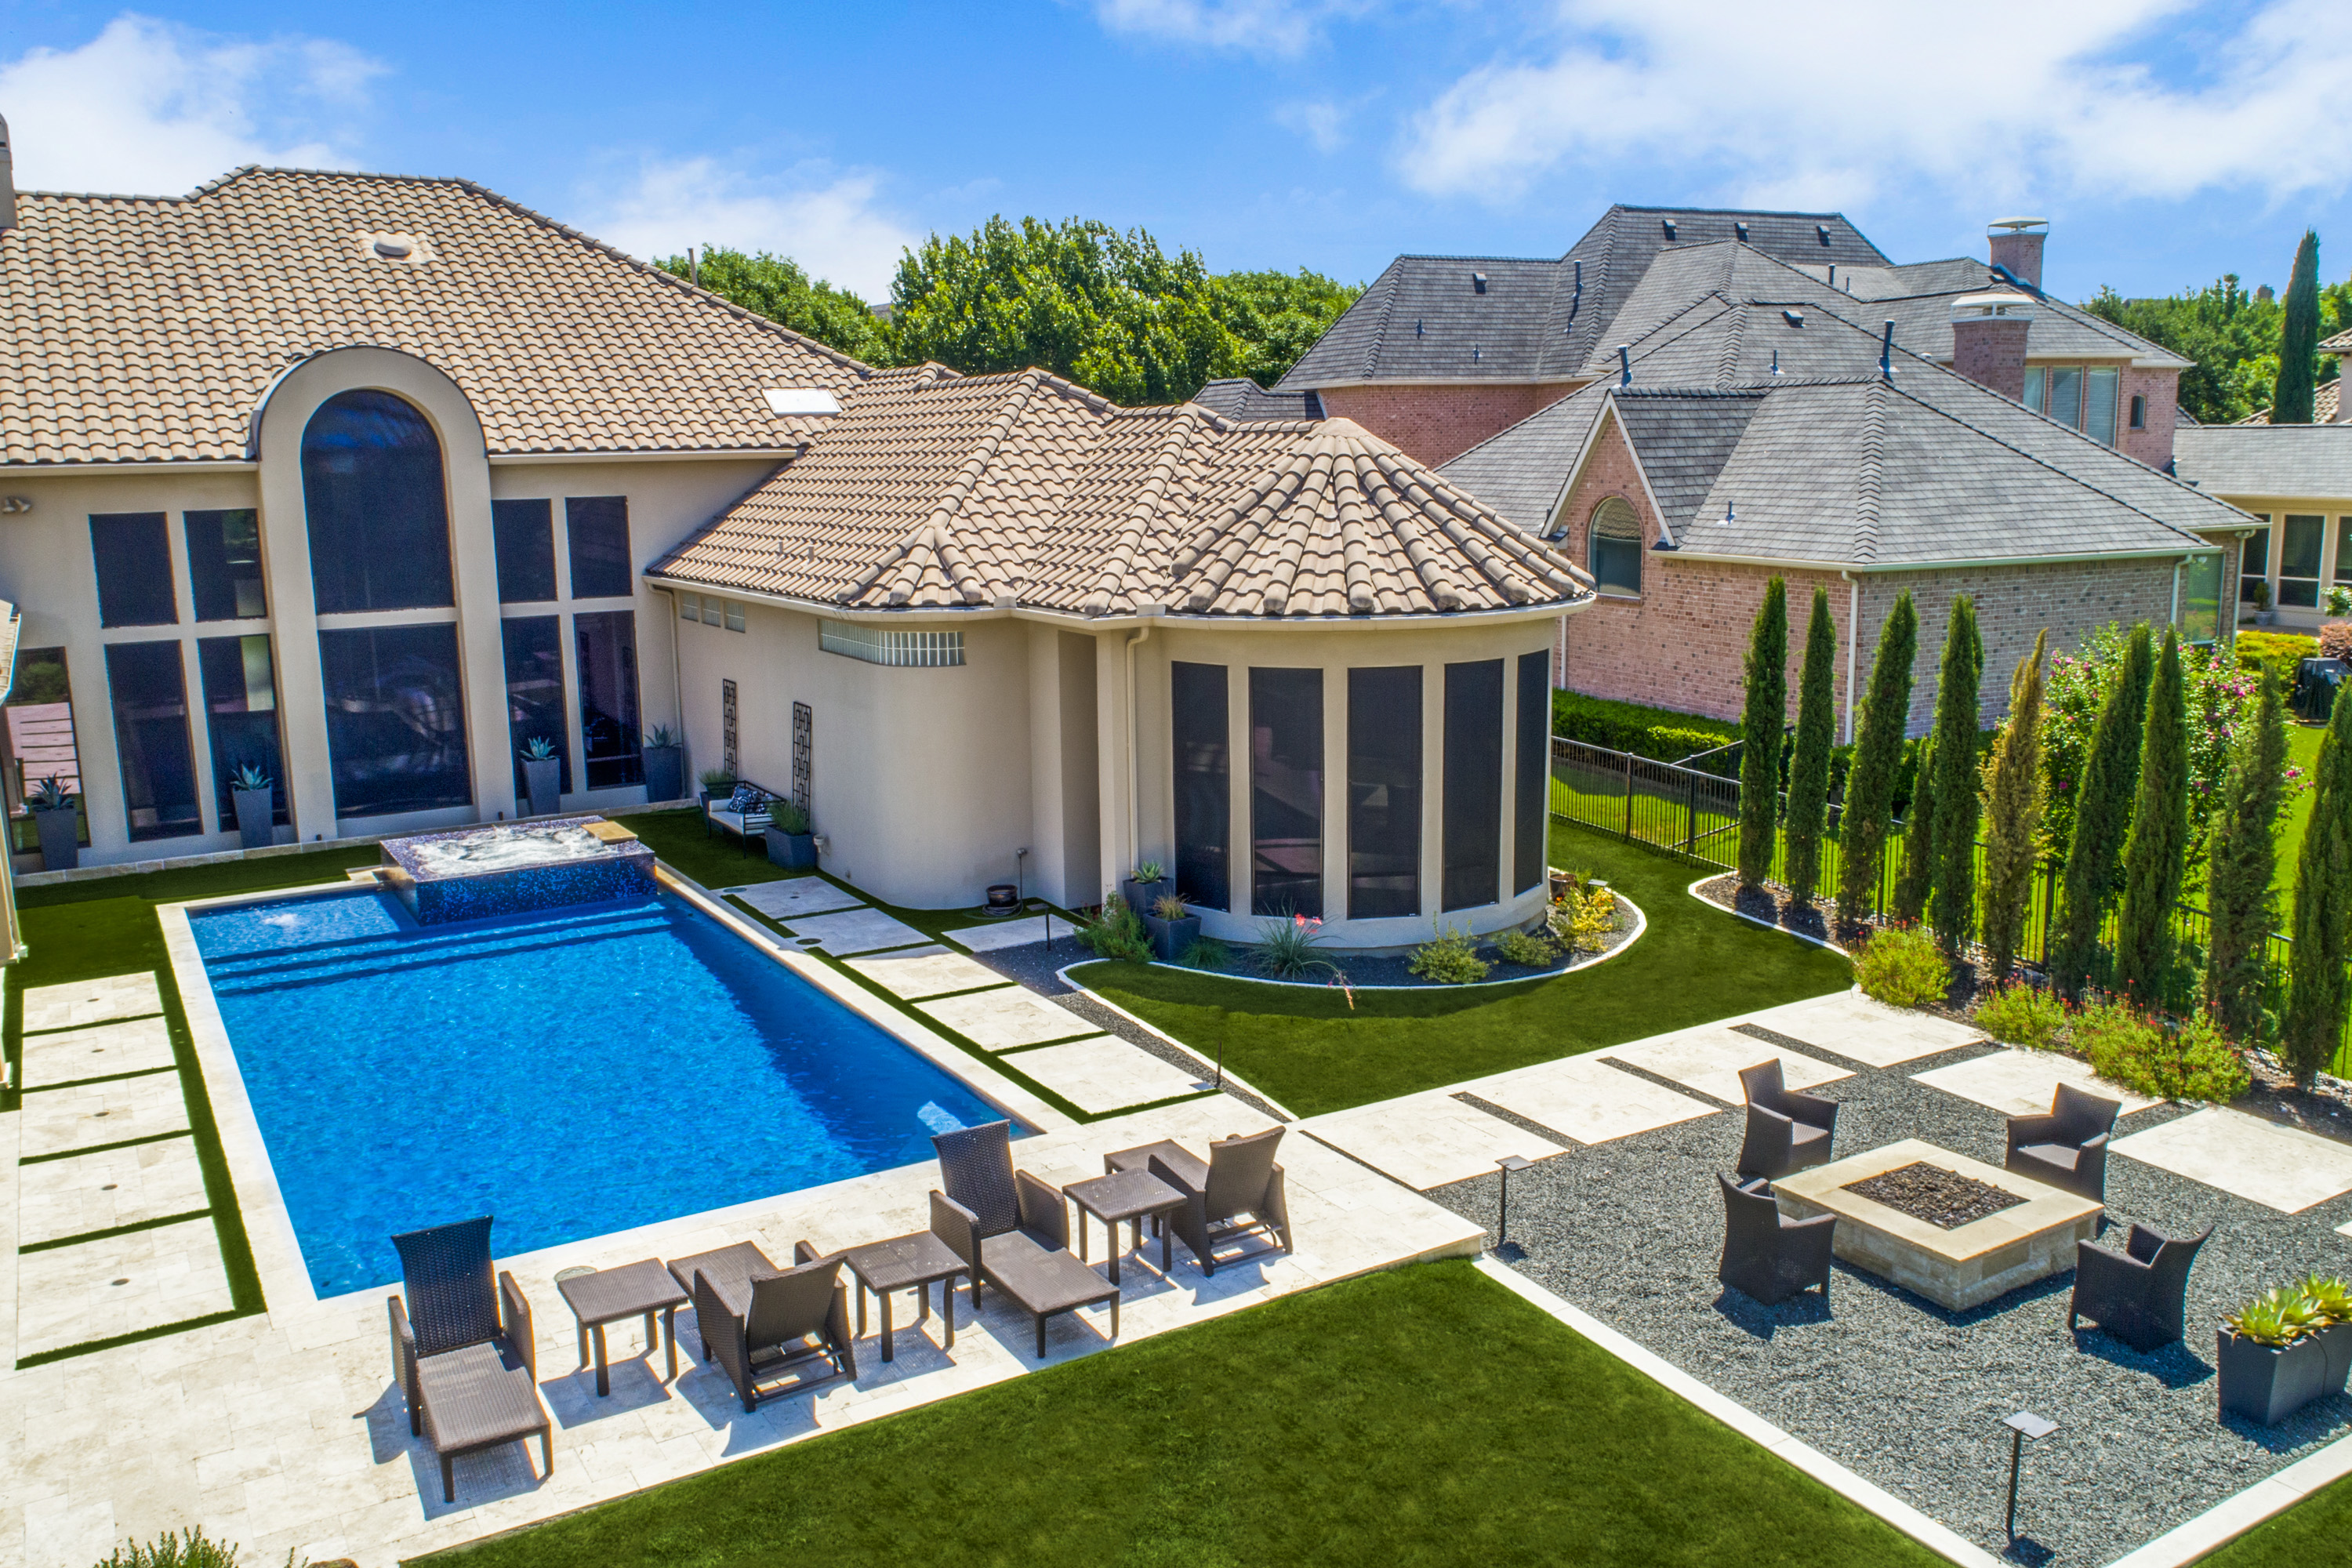 Gold_Medal_Pools-Residential_Pool_Straight_Line_Style-Frisco-TX-14